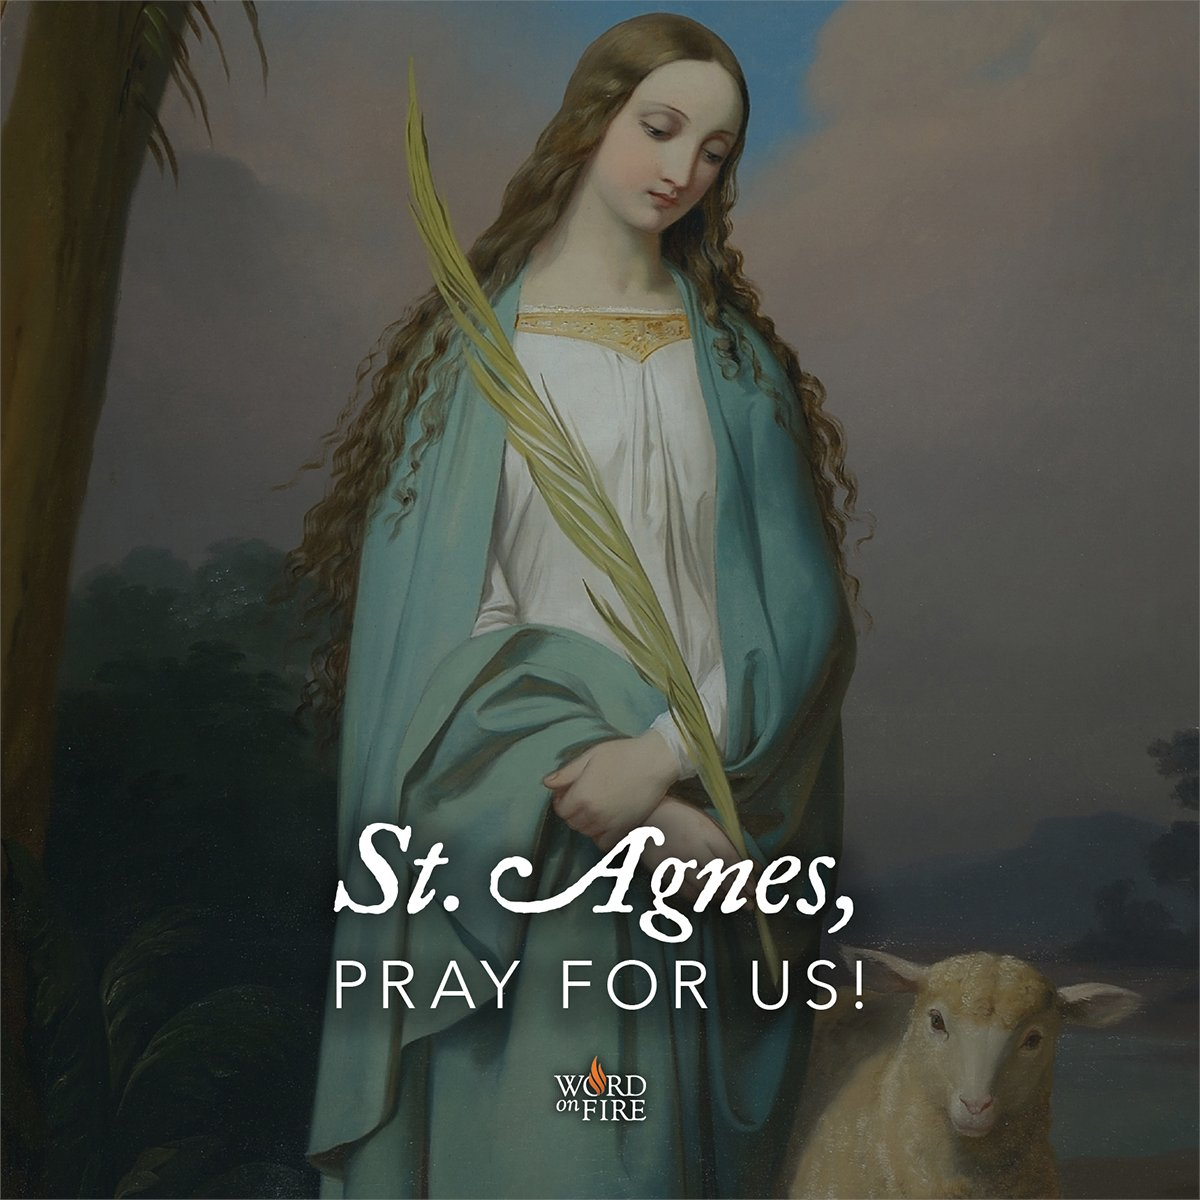 St. Agnes, virgin, martyr, and patron saint of young girls, pray for us!